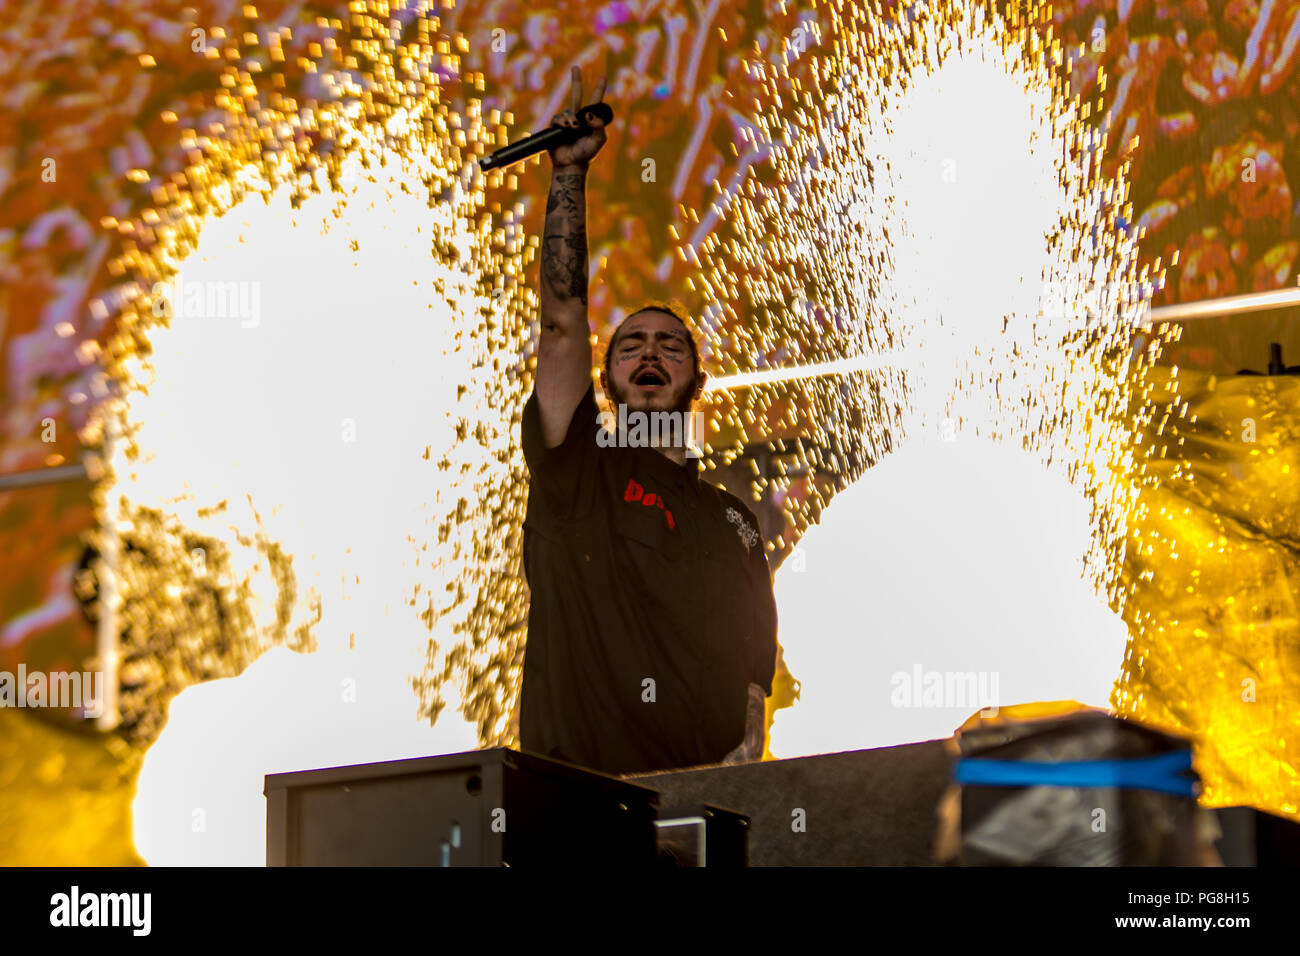 Reading,Berkshire, UK. 24th August 2018. Post Malone on the main stage at Reading Festival 2018. Credit: Jim Houlbrook/Alamy Live News - Stock Image